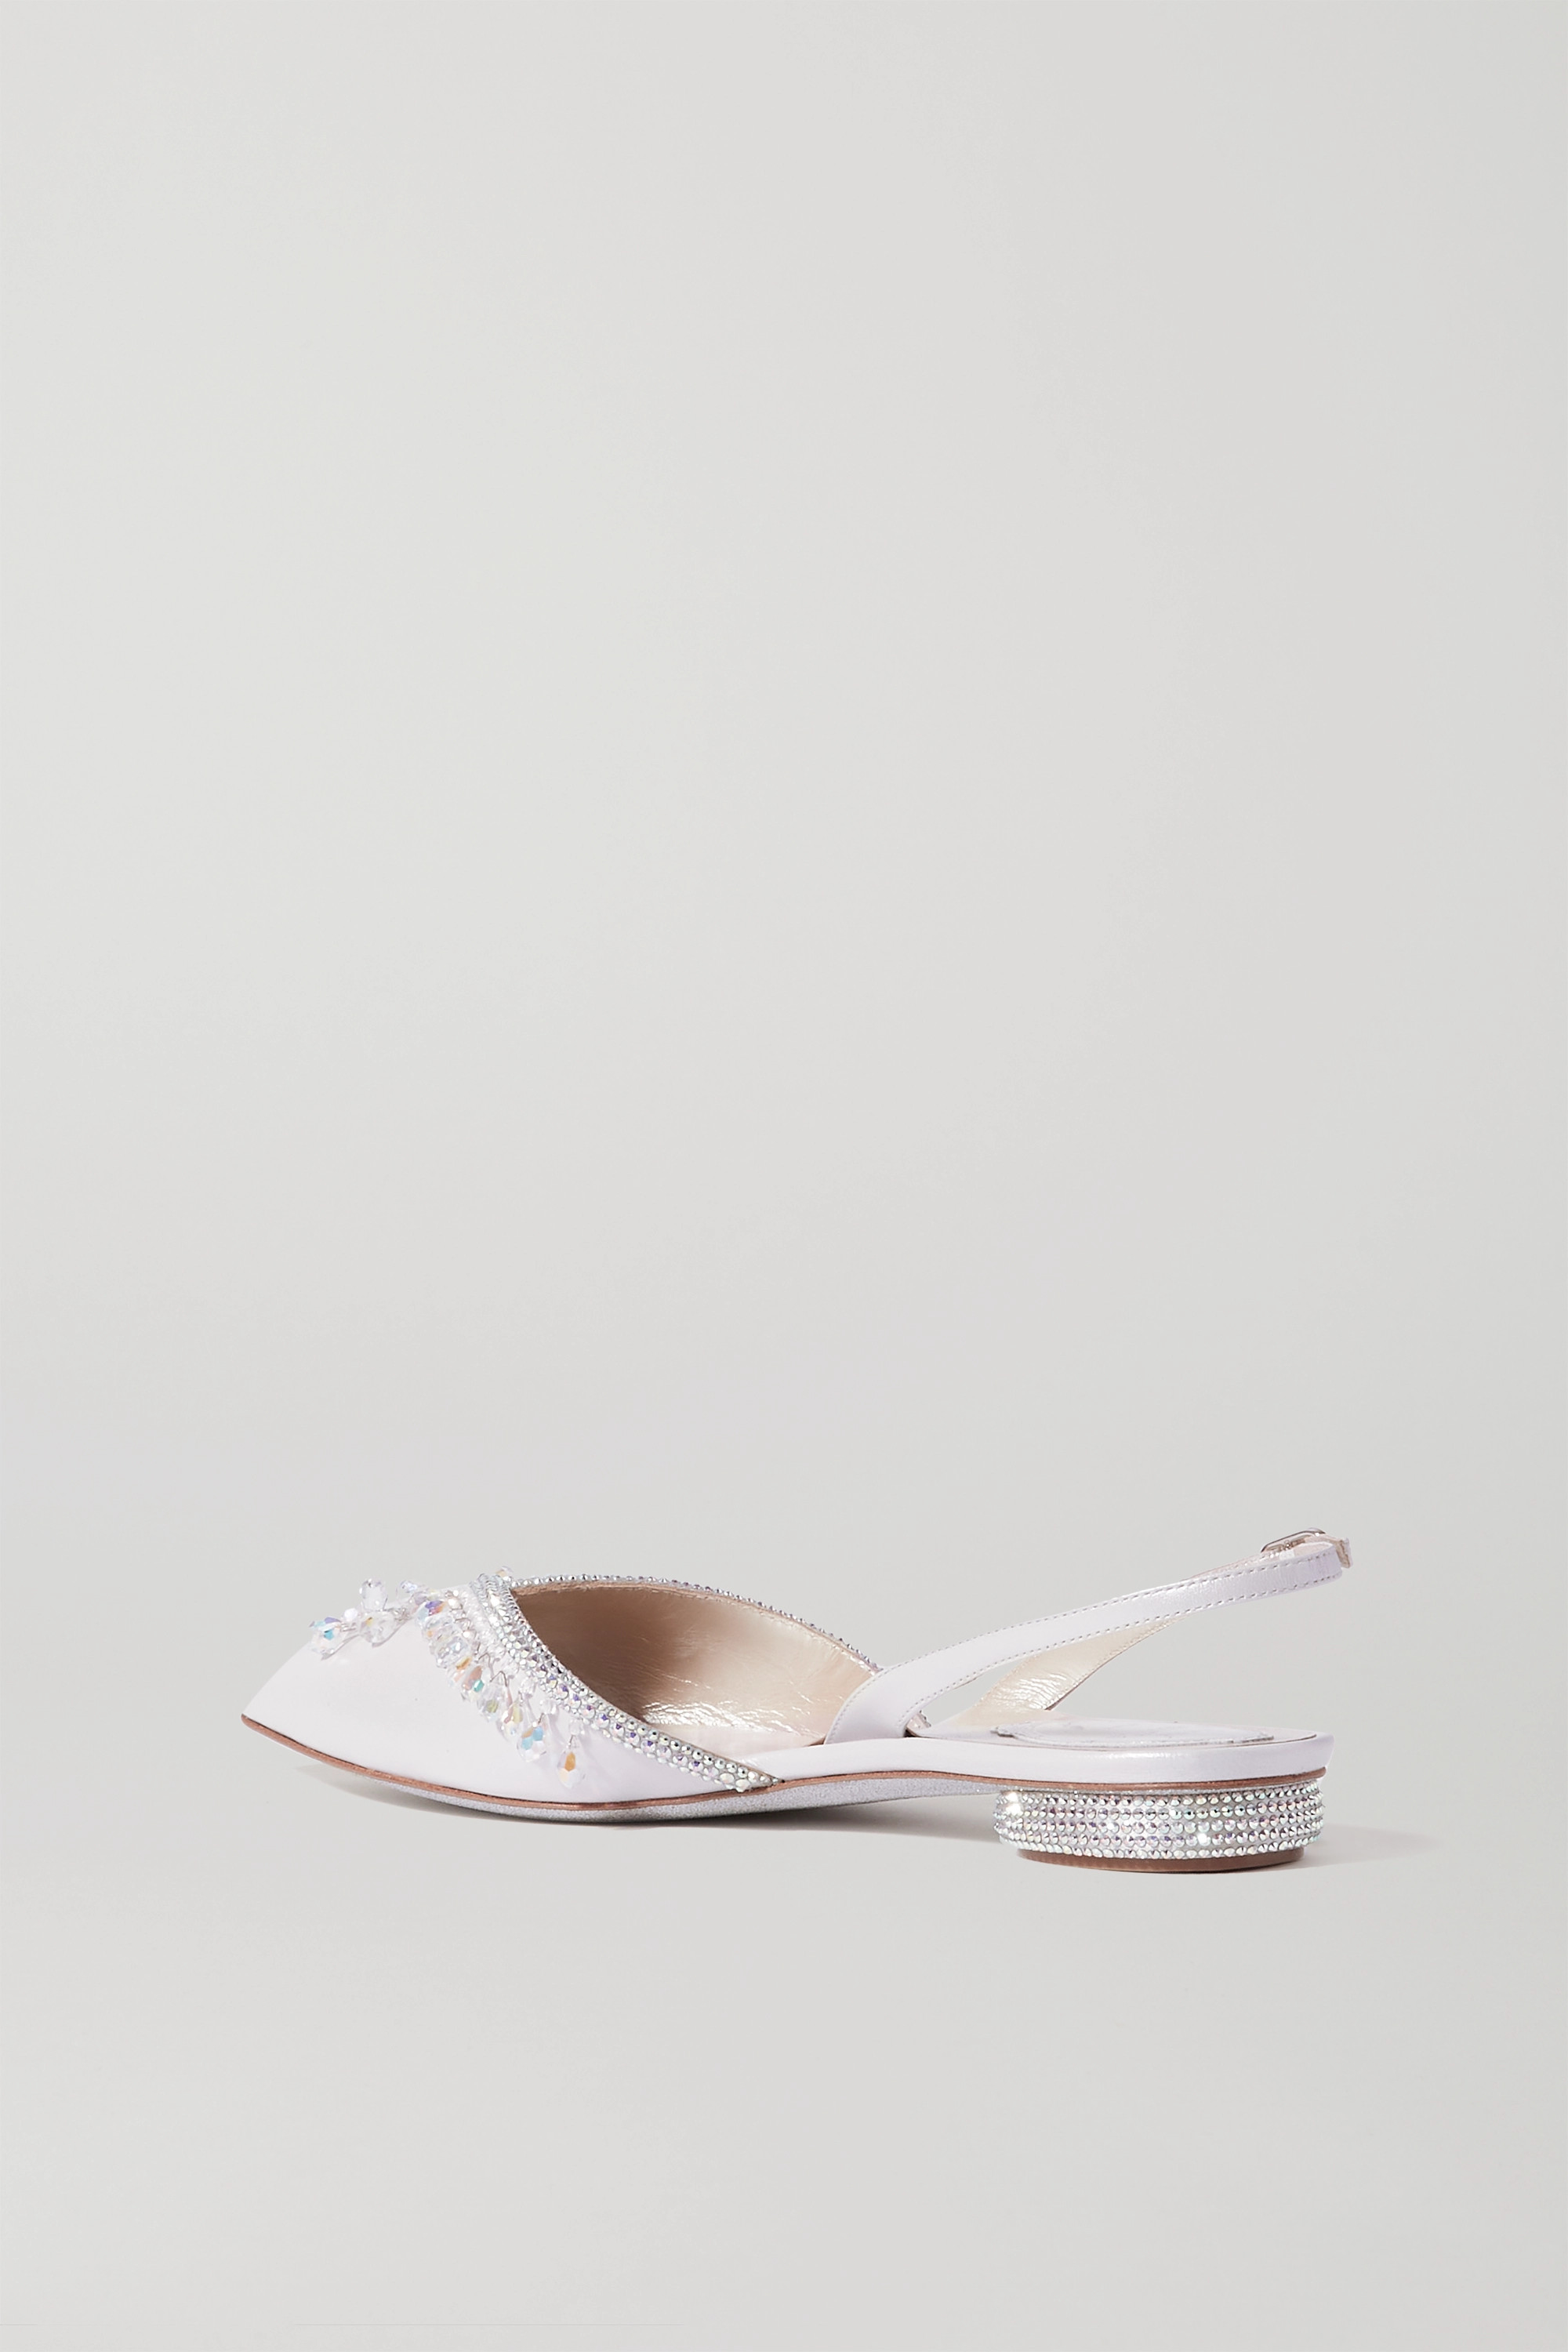 RENÉ CAOVILLA Crystal-embellished cutout leather point-toe flats